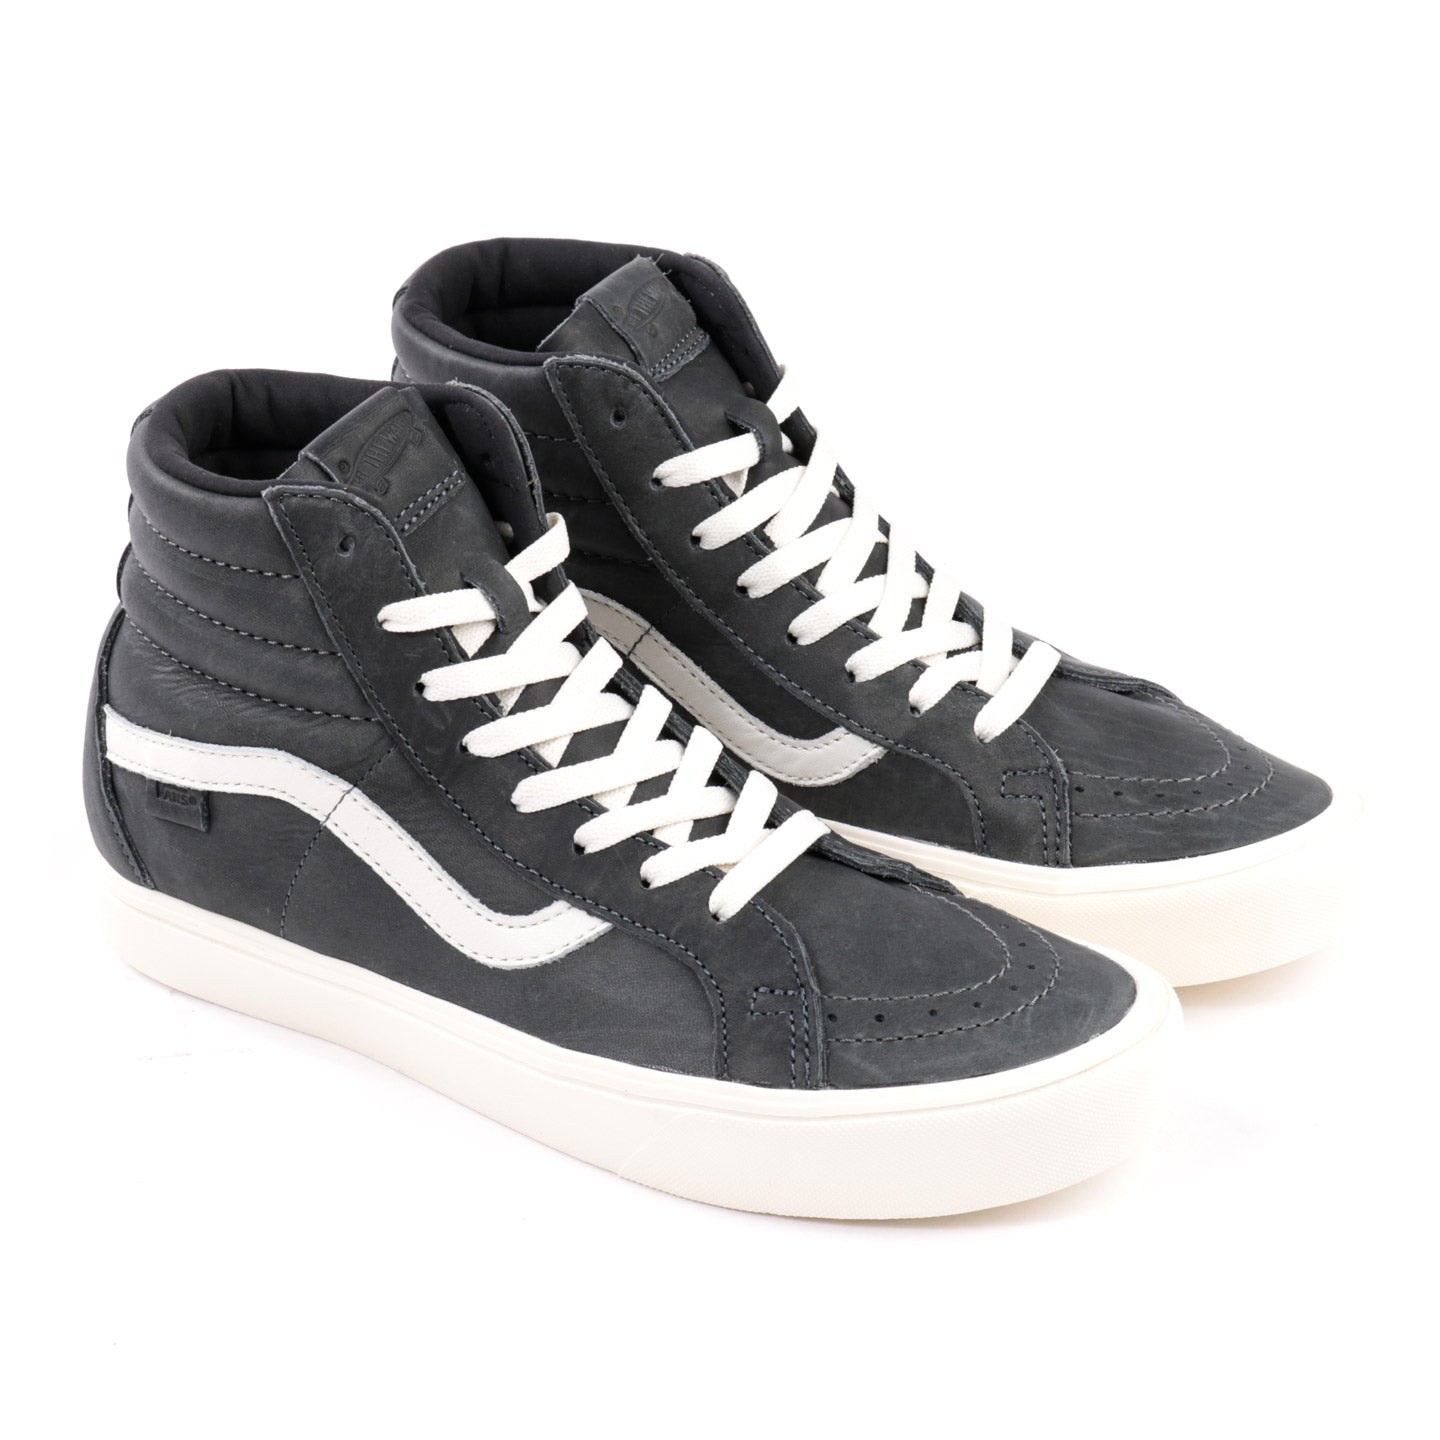 VAULT BY VANS SK8-HI REISSUE LITE LX HORWEEN LEATHER PEAT